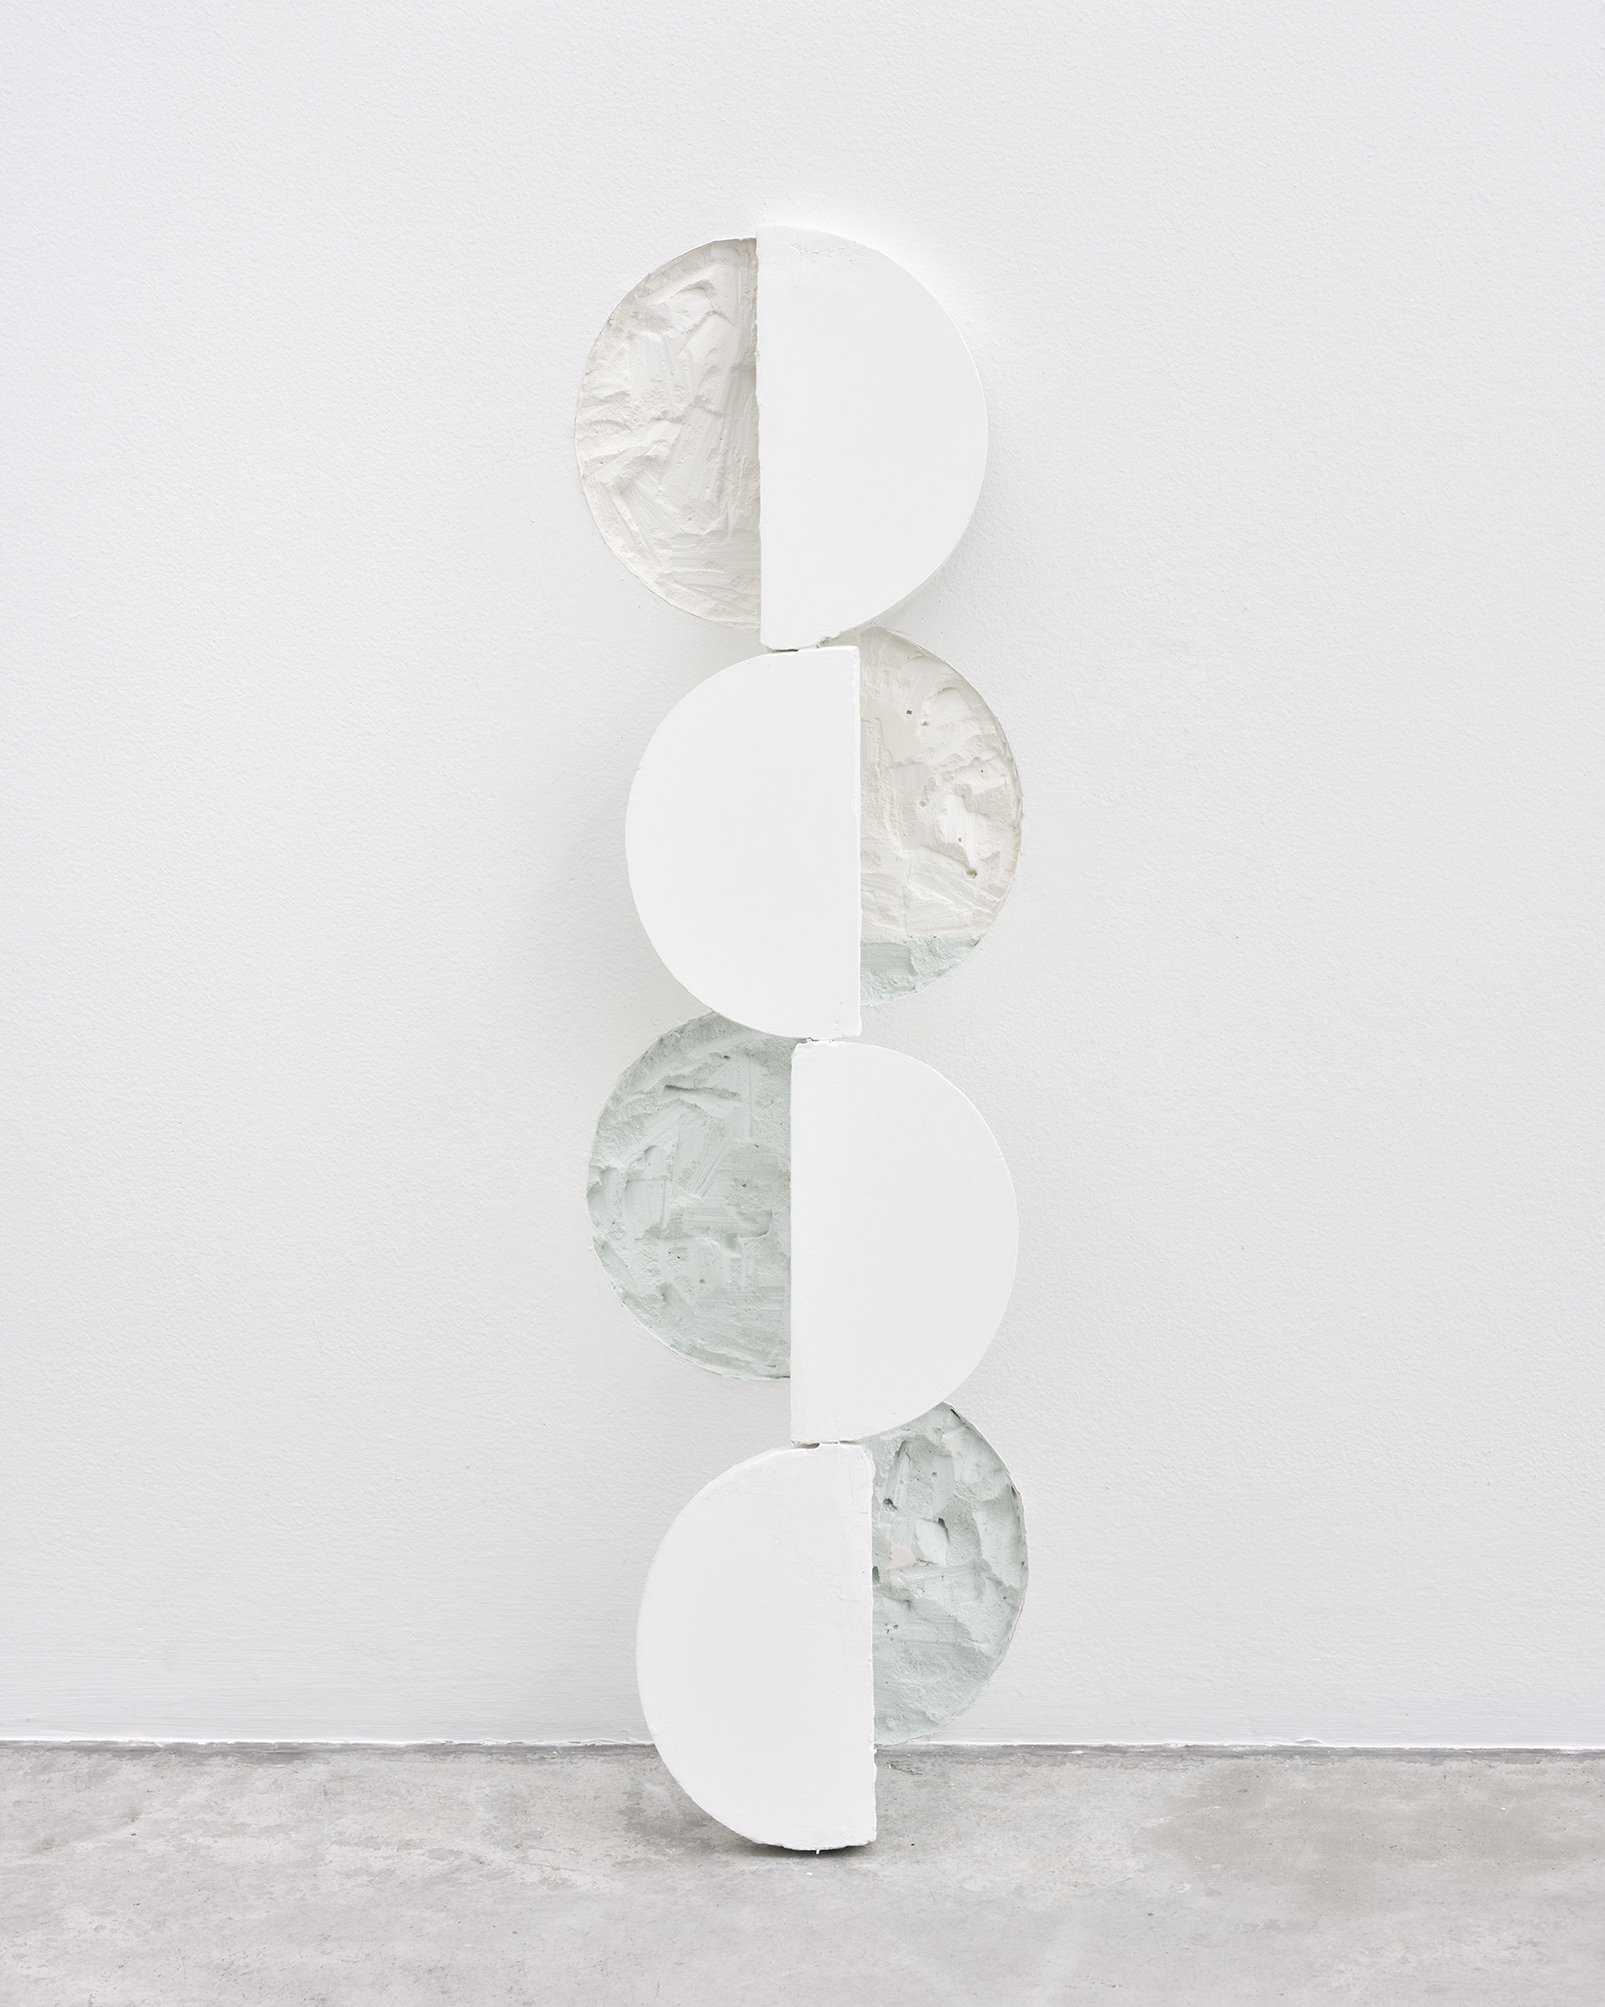 Manoela Medeiros  Excavation,  2018 Plaster and fragments of walls 69 x 18 cm 27 5/32 x 7 3/32 inches